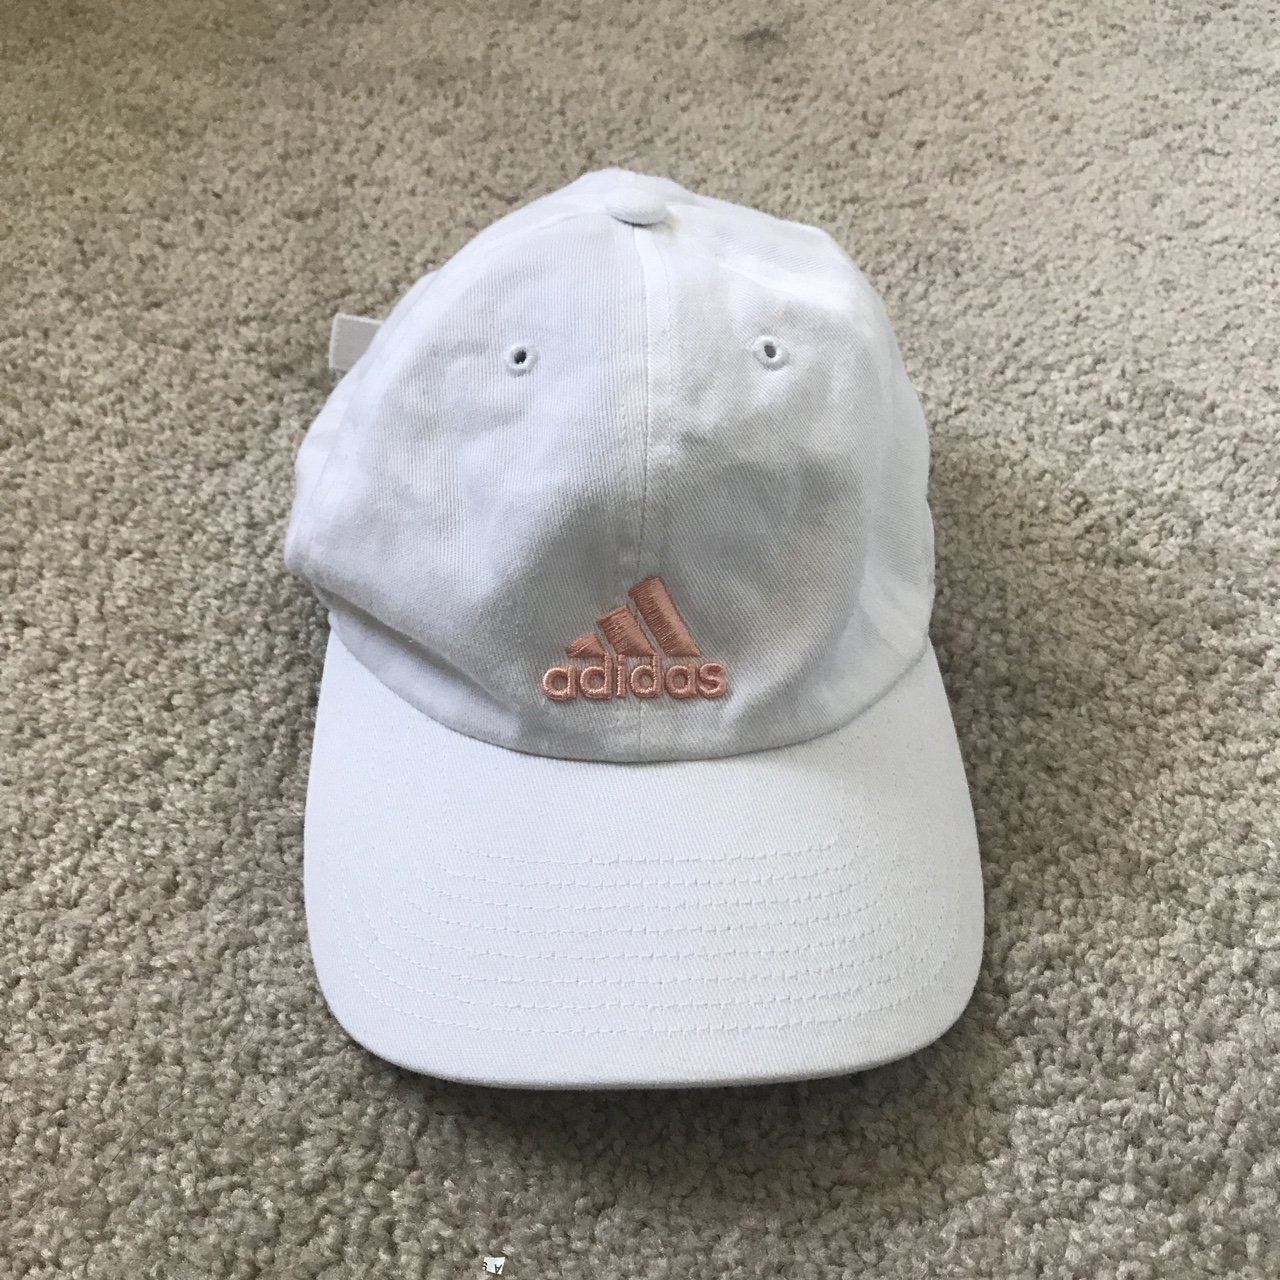 d8dace078a5 Adjustable Climalite White and Pink Adidas Baseball hat  hat - Depop